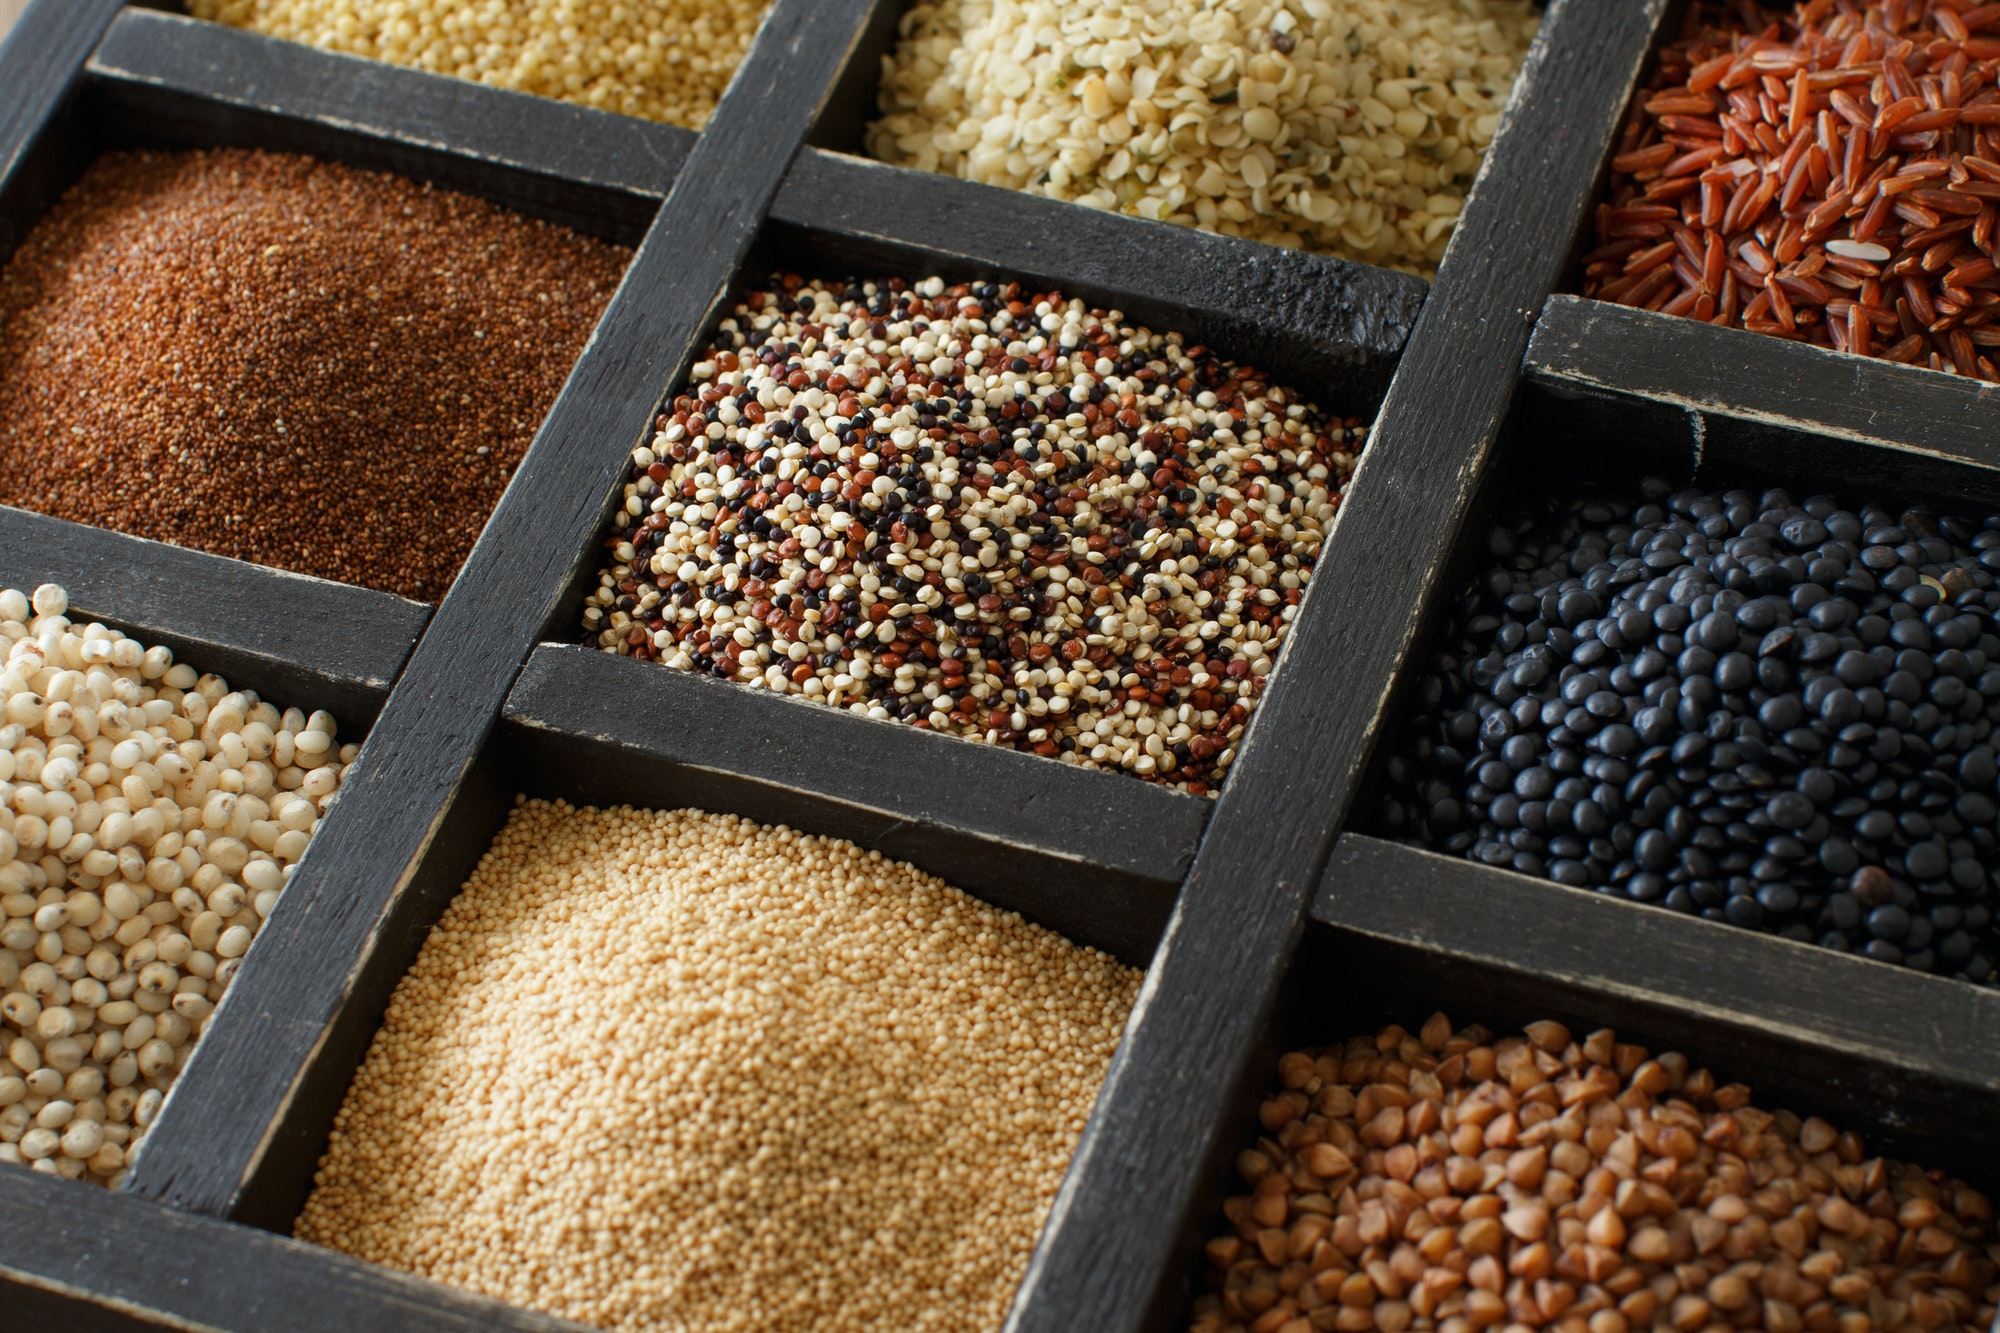 Gluten free grains in a box